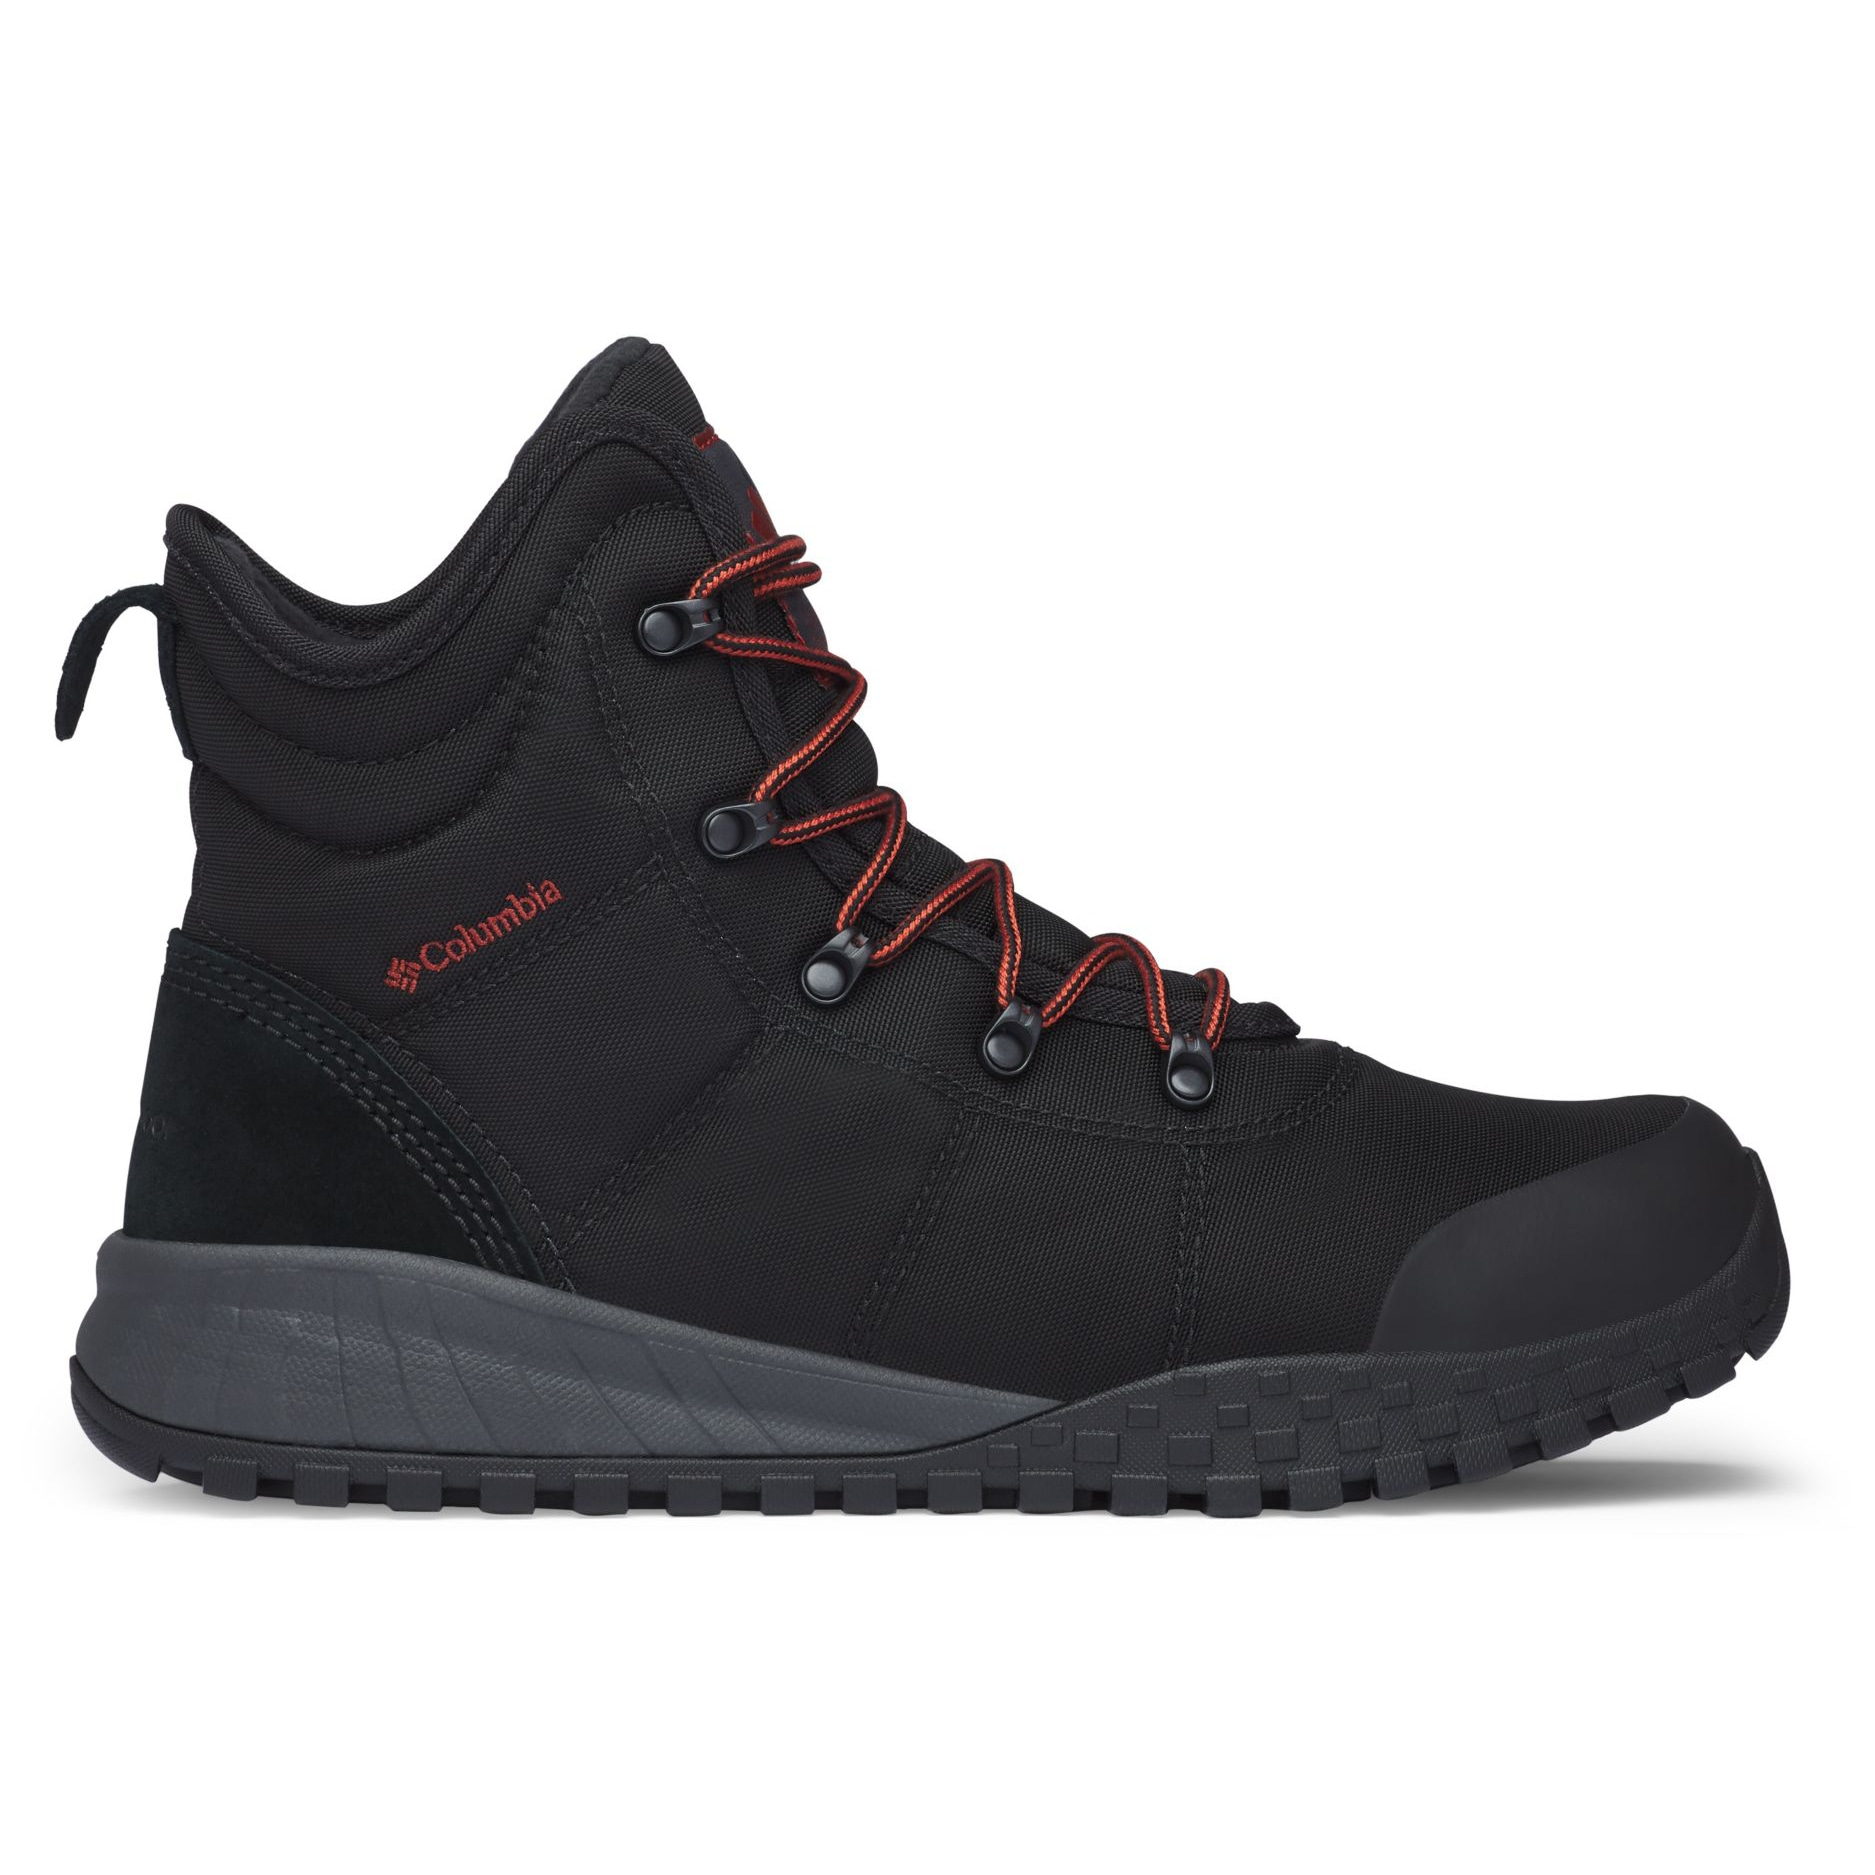 Fairbanks Omni Heat Boot - Men's